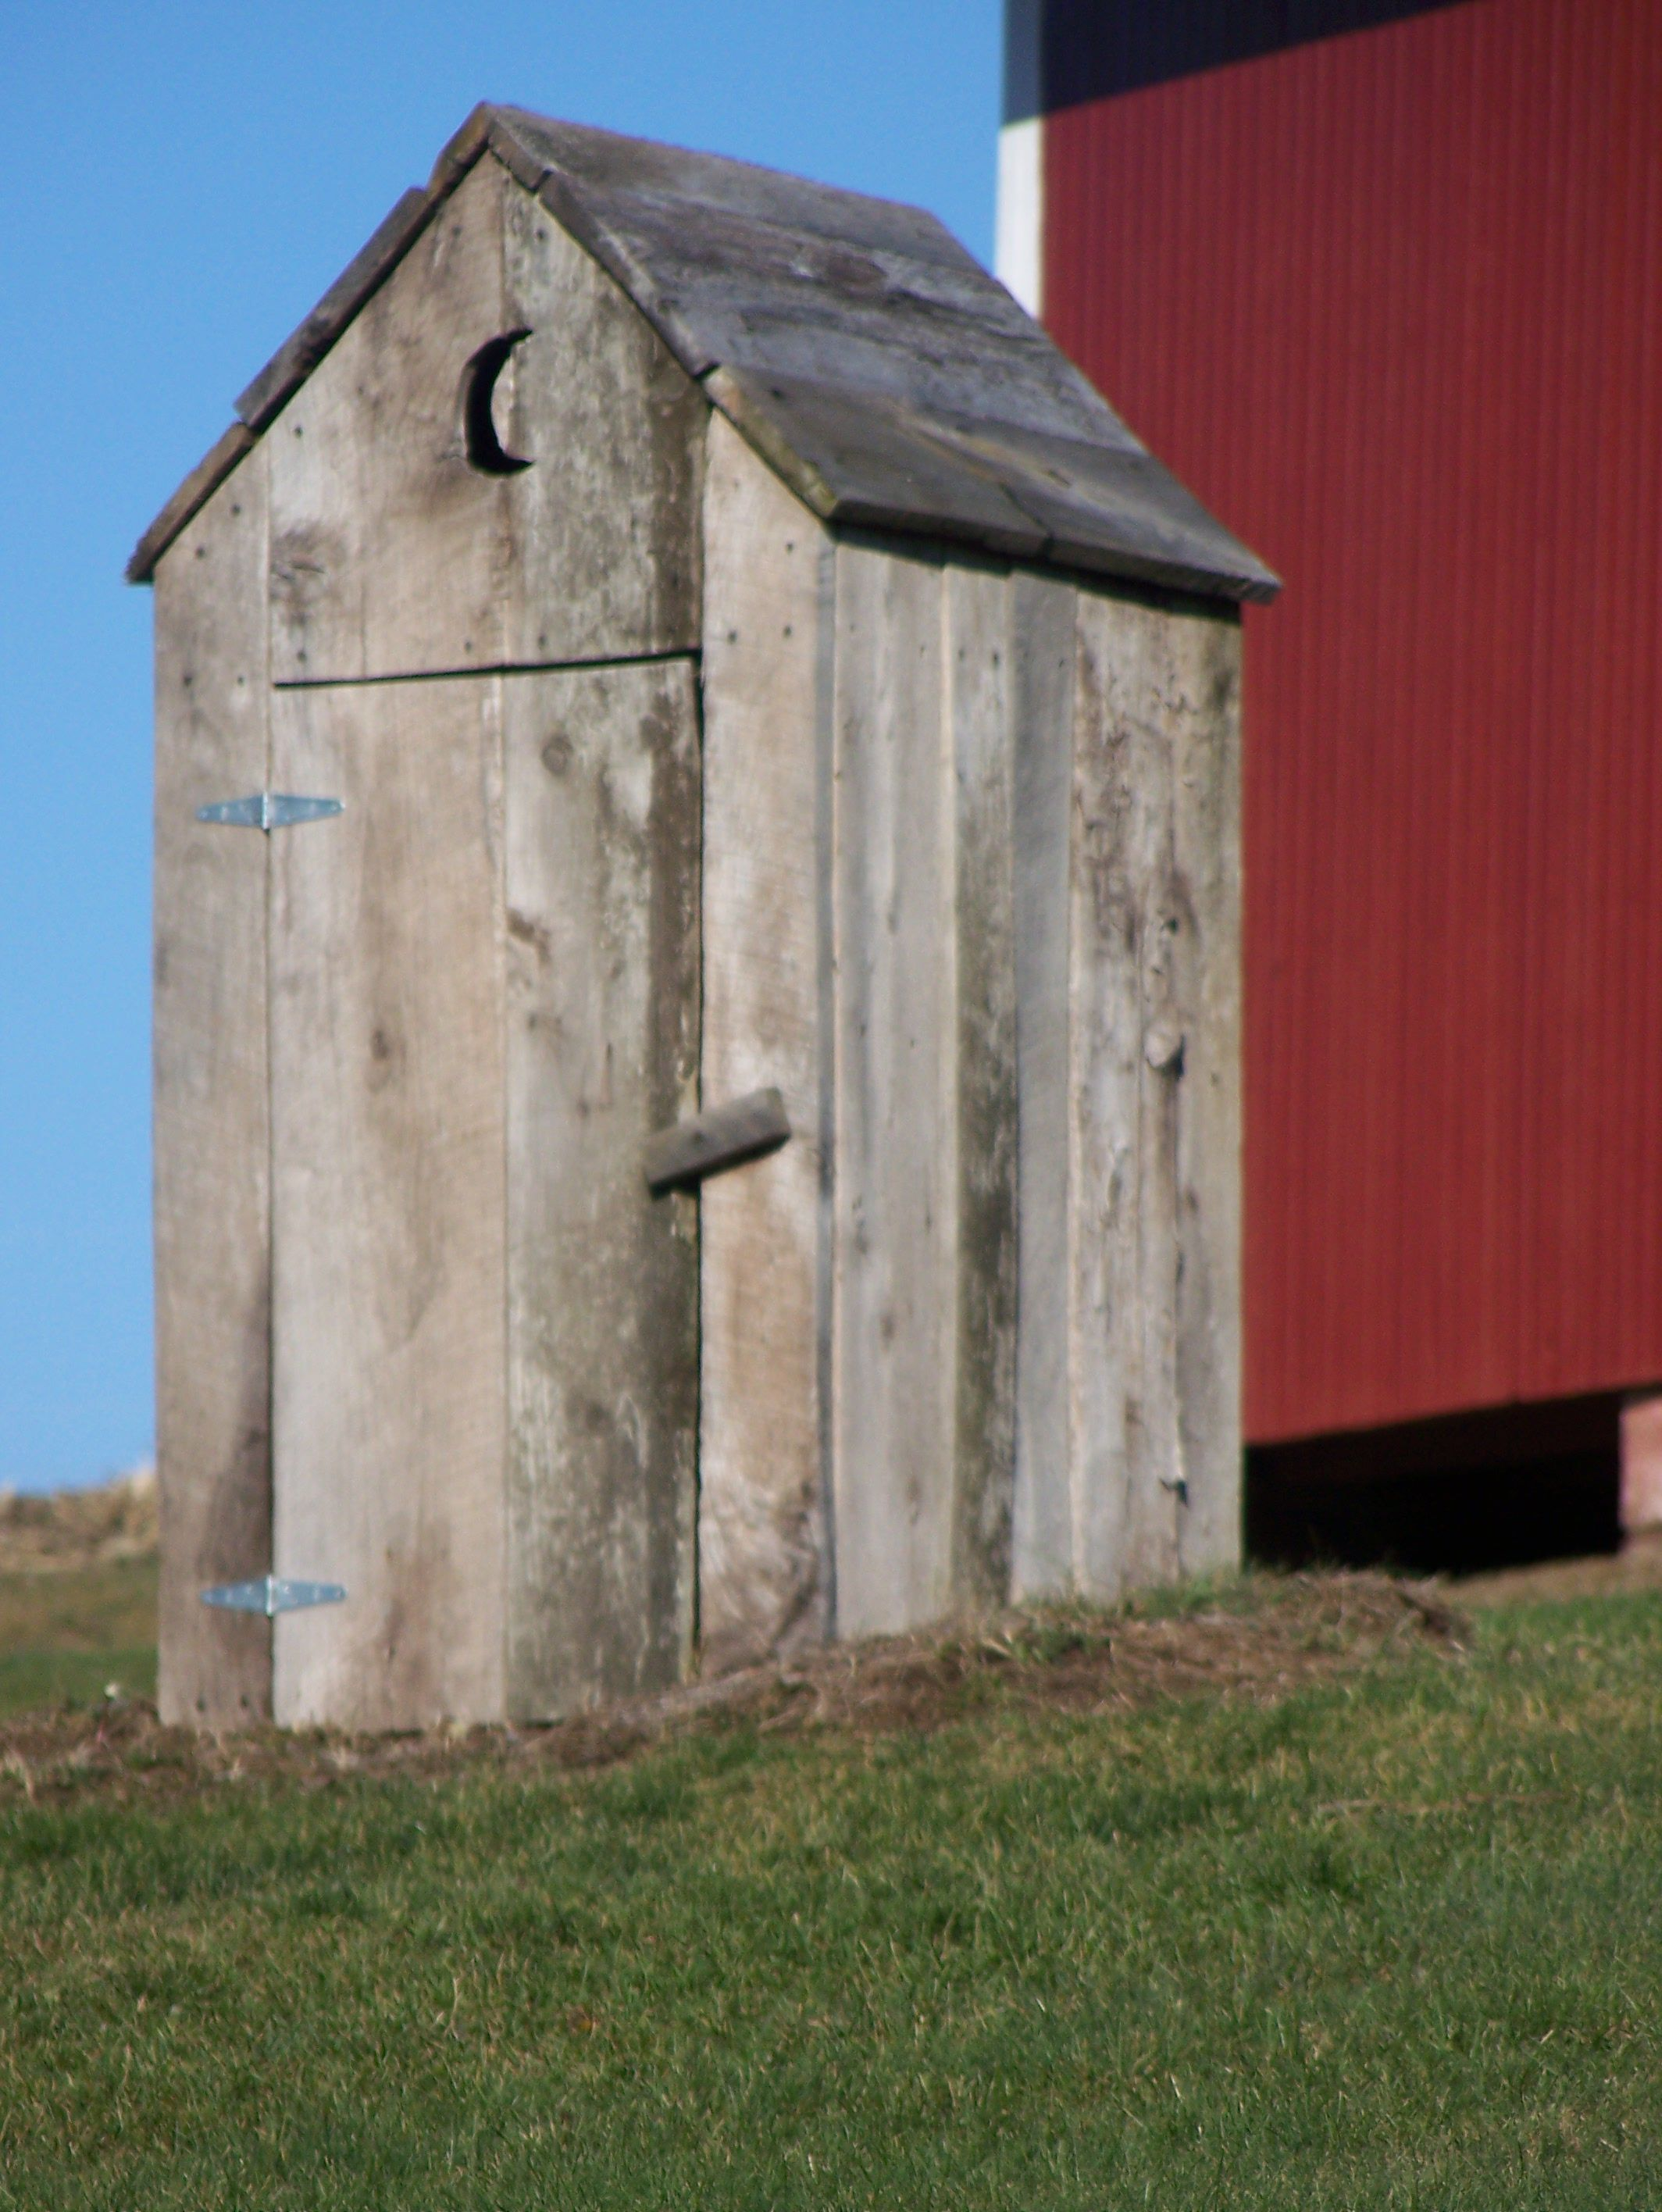 Outhouse outhouses 8 pinterest for Outhouse pictures